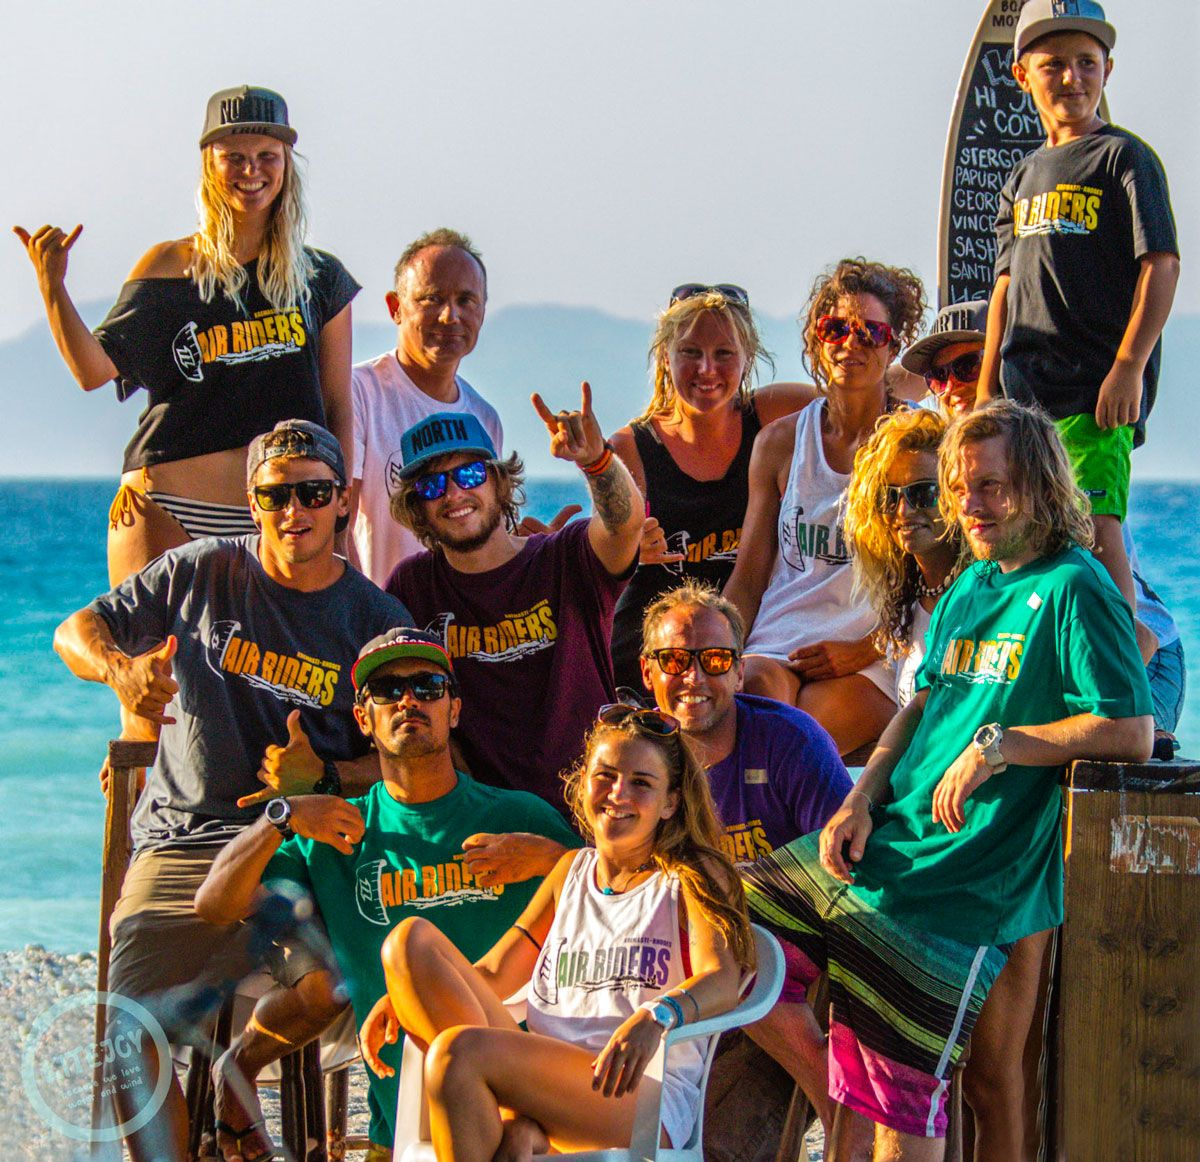 team-kitesurfing-kite-air-riders-kitepro-center-kremasti-rhodes-family